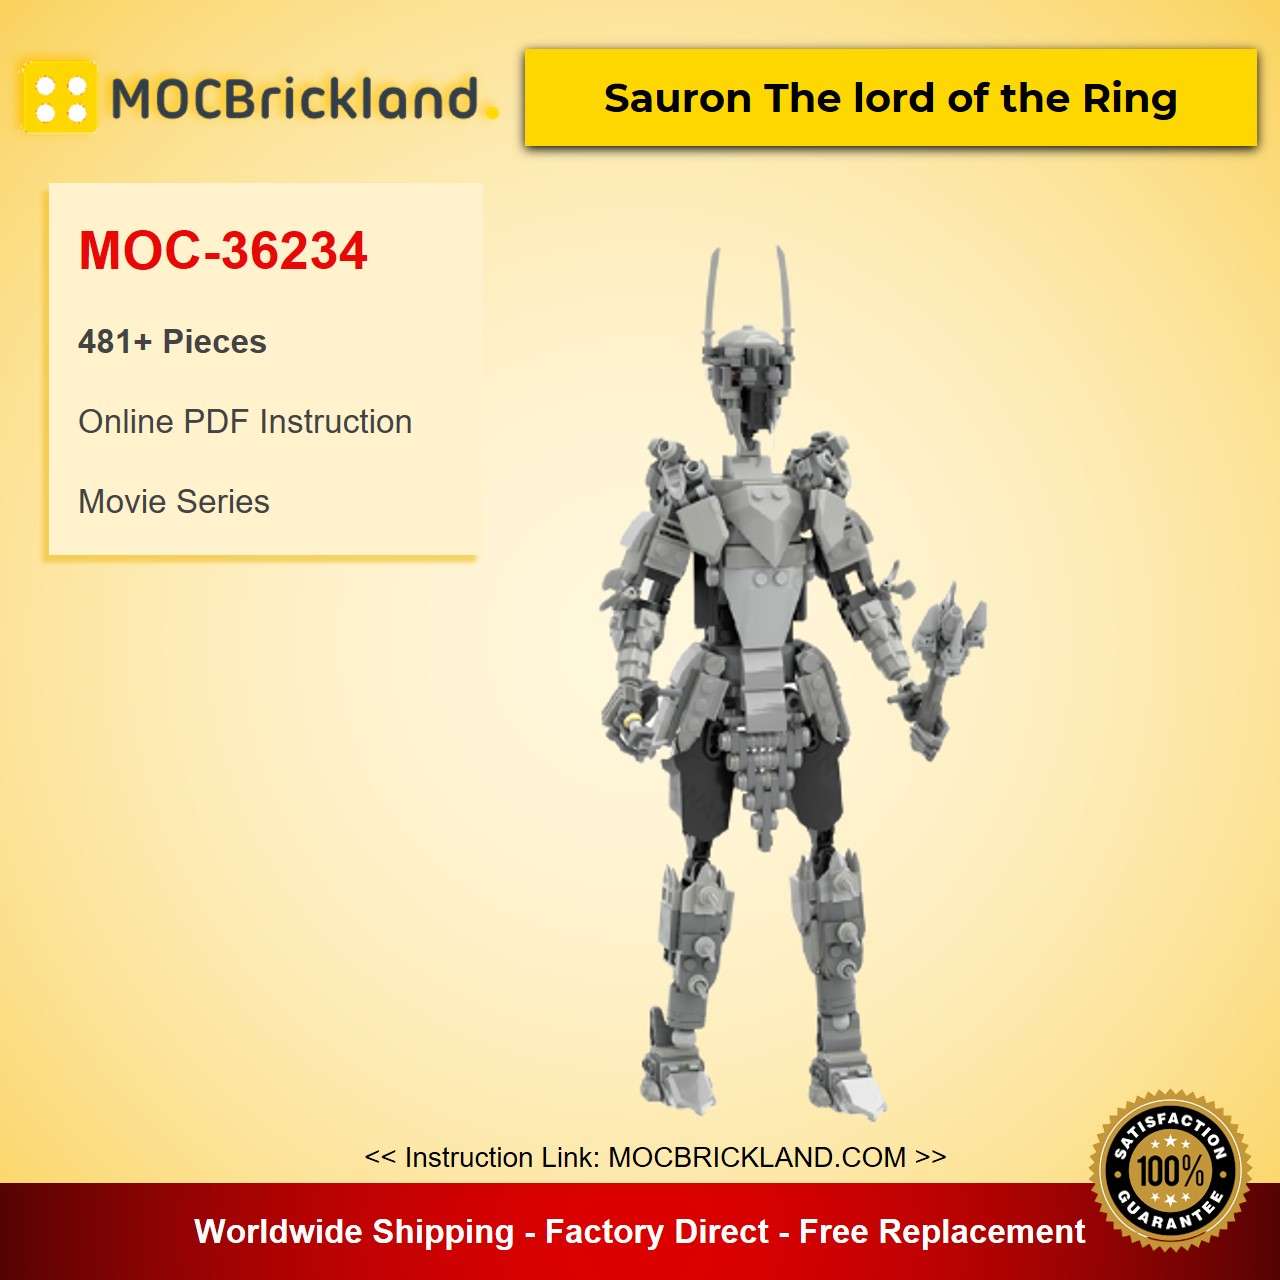 Sauron The lord of the Ring MOC-36234 Movie Designed By buildbetterbricks With 481 Pieces